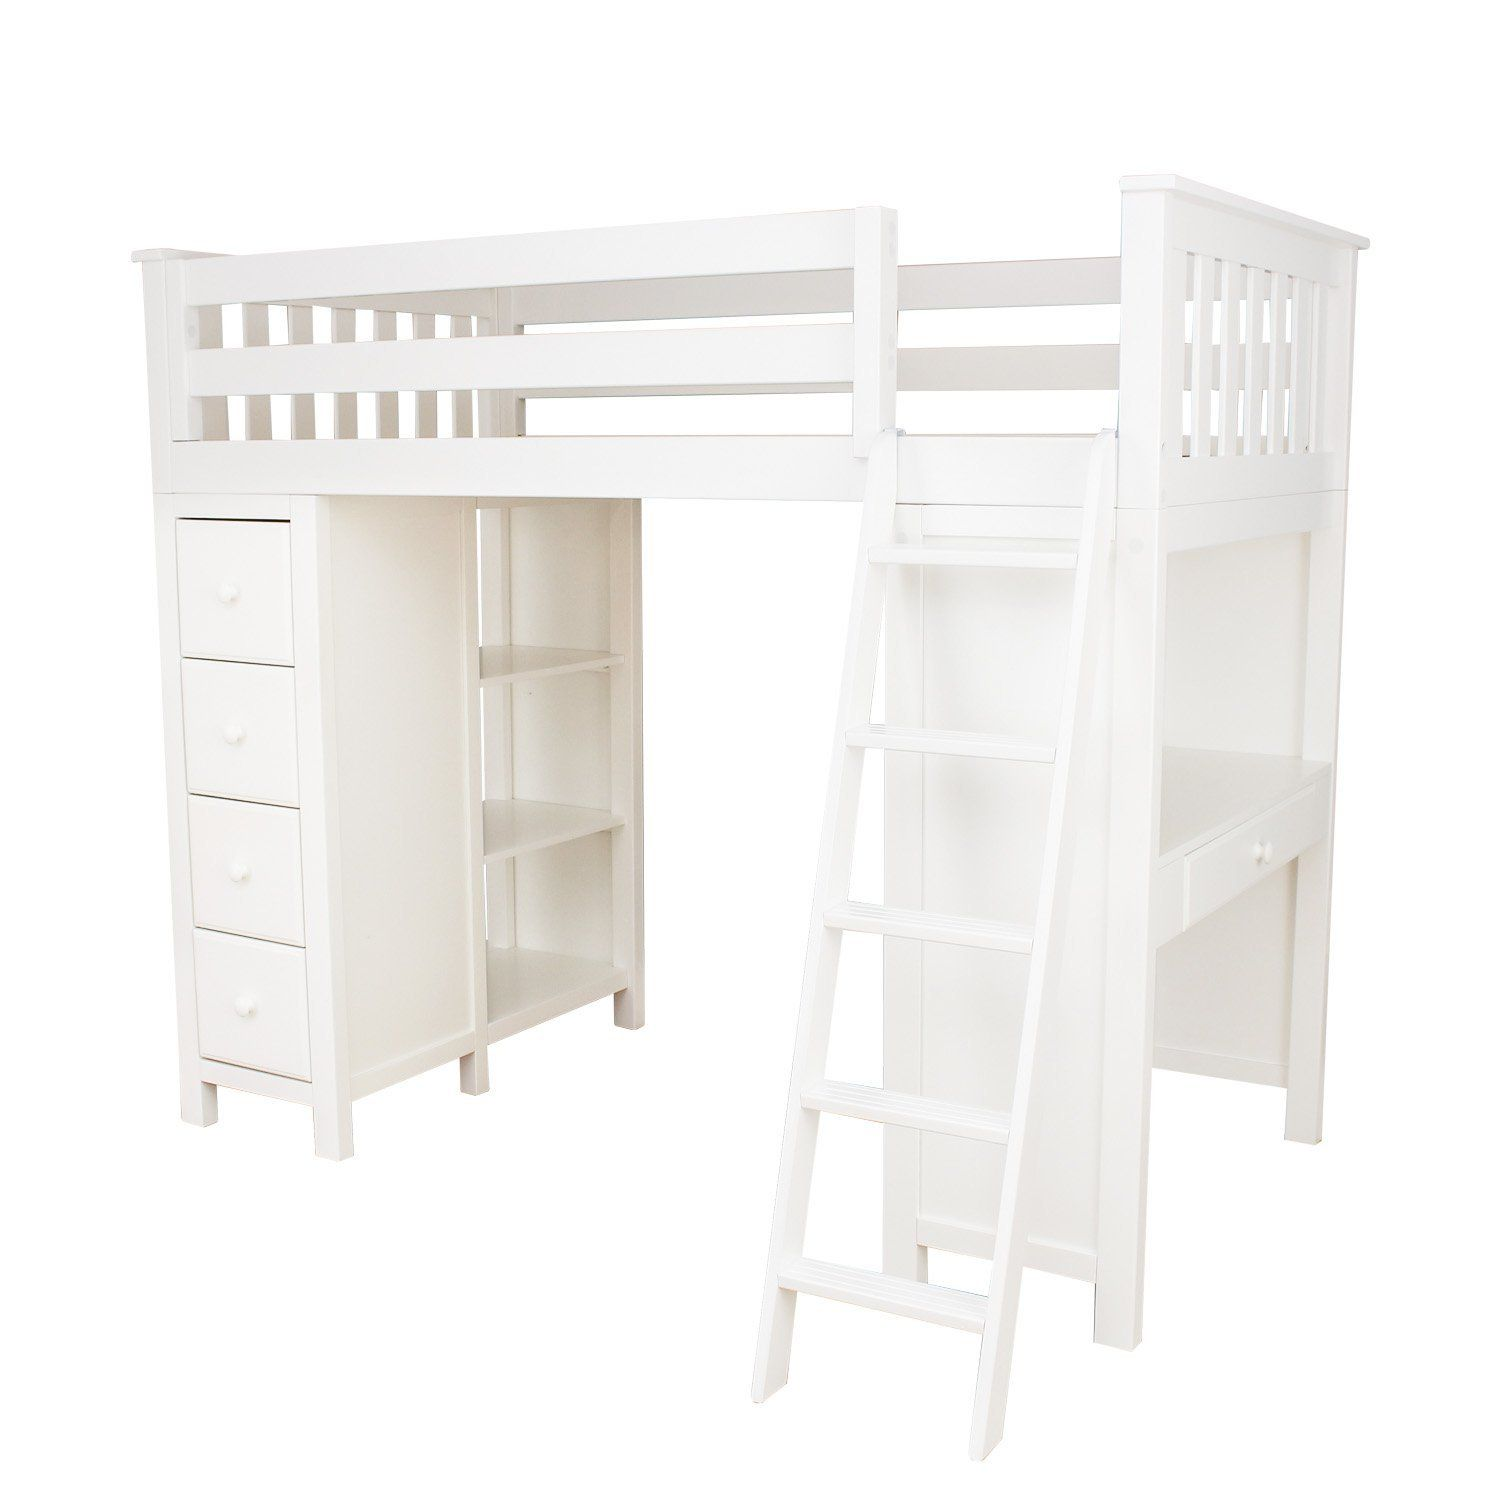 Plank Beam Combo Loftbed Dresser Desk White Loftbedroom Bunkbeds Bunk Smallspacehacks Smallspace Twin Loft Bed Bed With Drawers Low Loft Beds